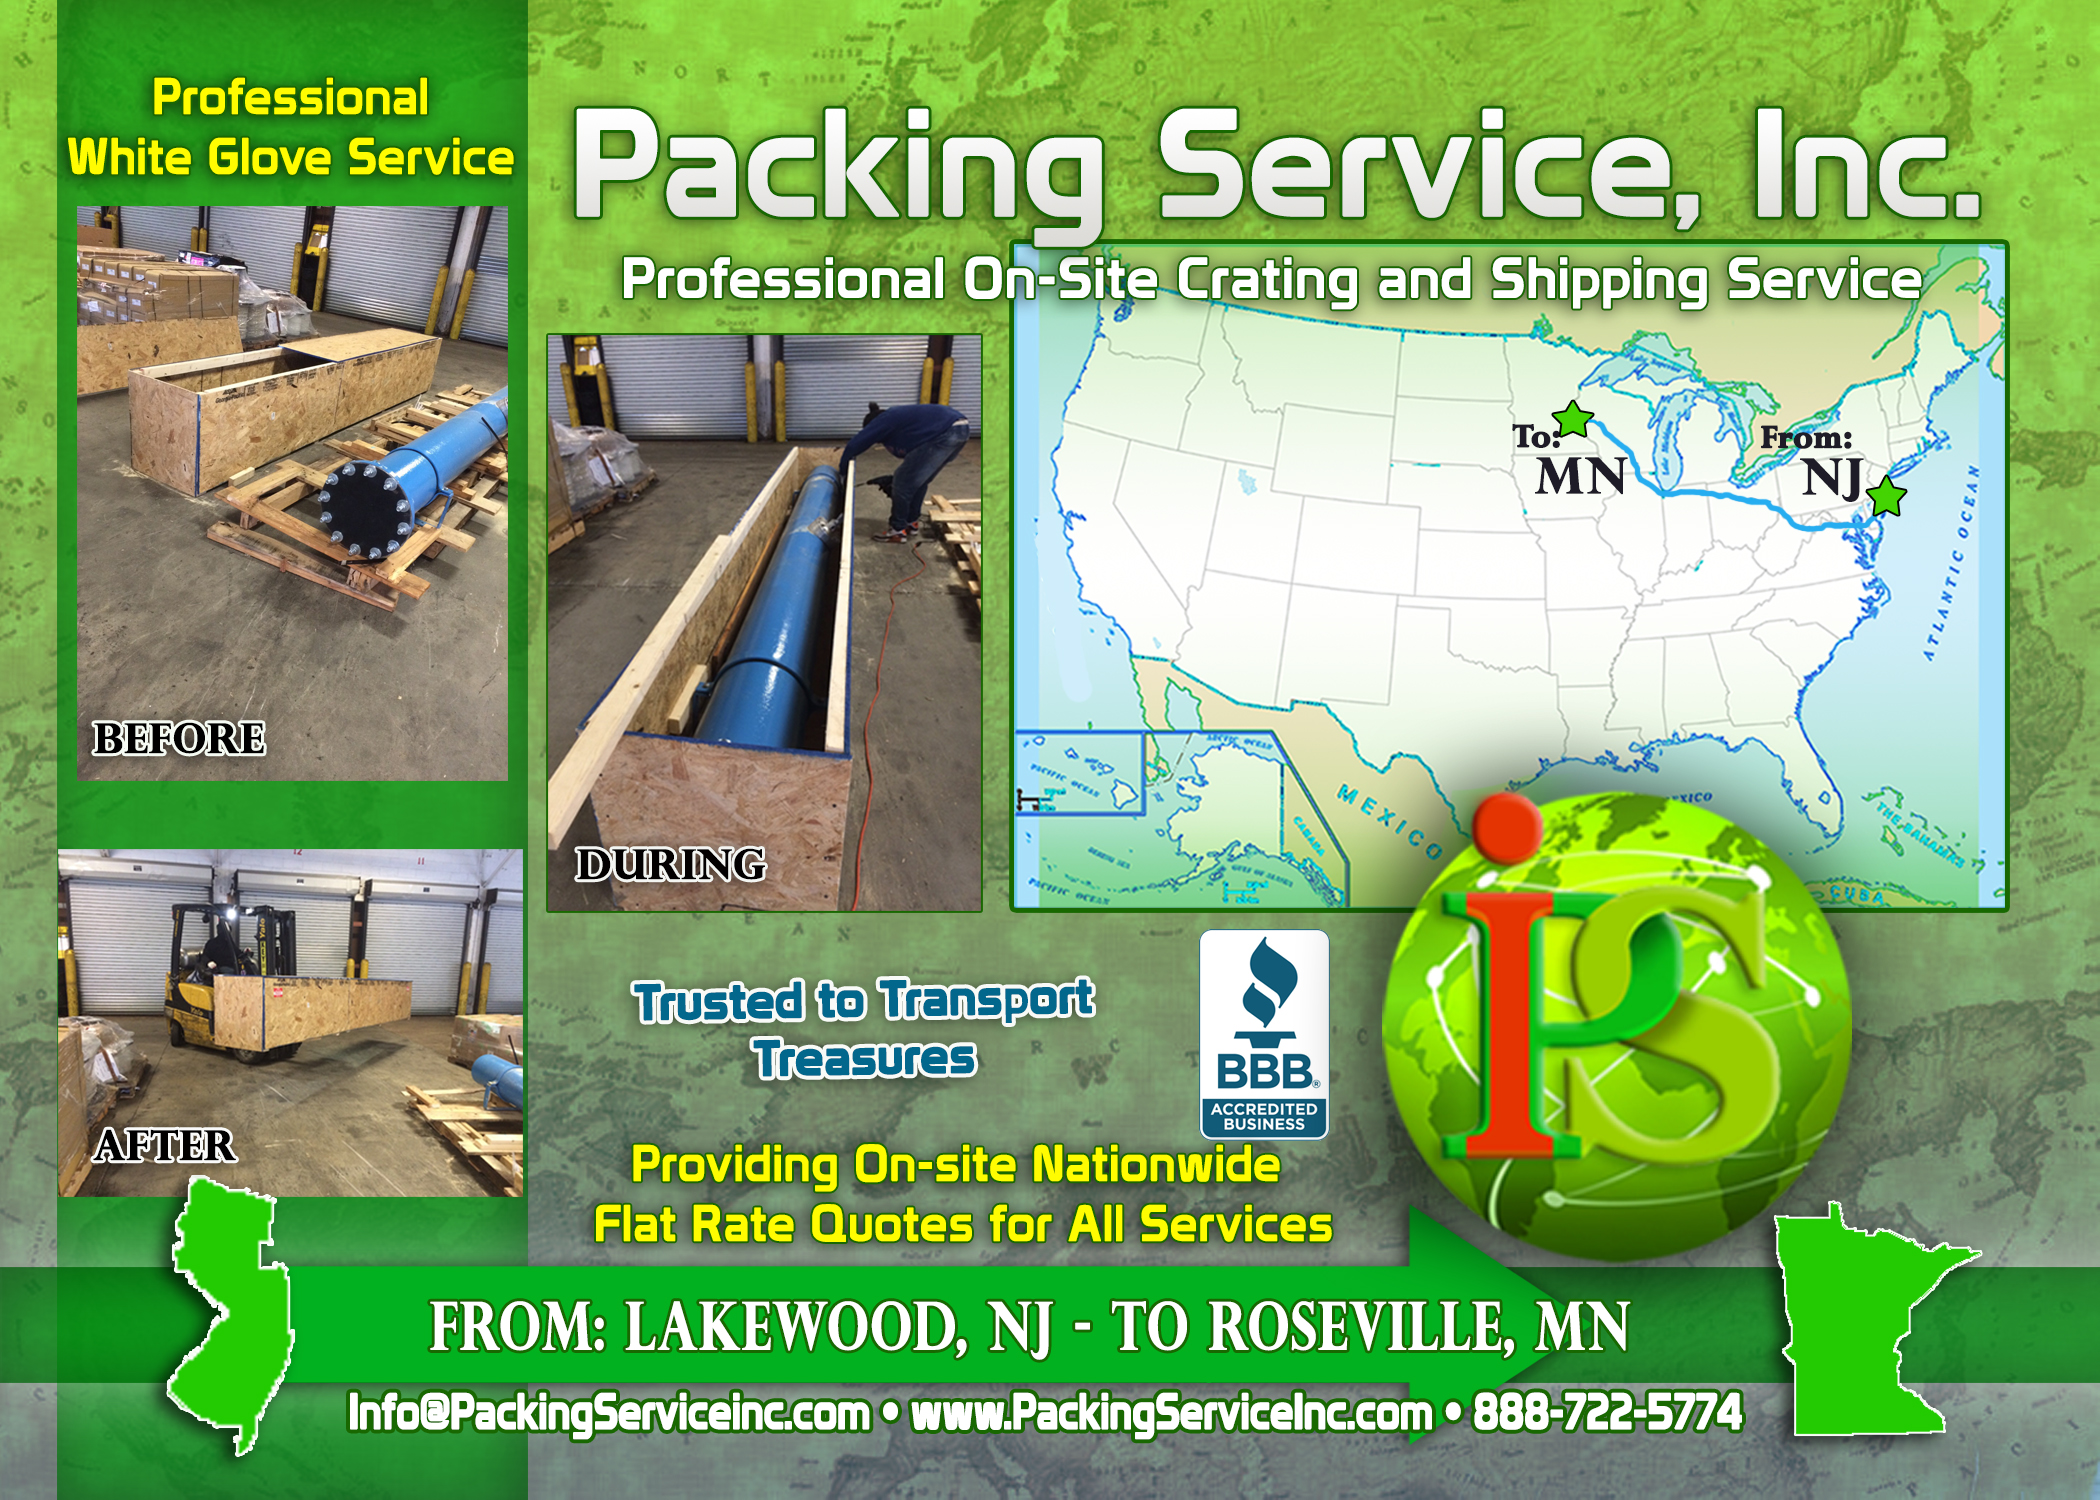 Building custom wooden crates for any sized object is what we do here at Packing Service, Inc